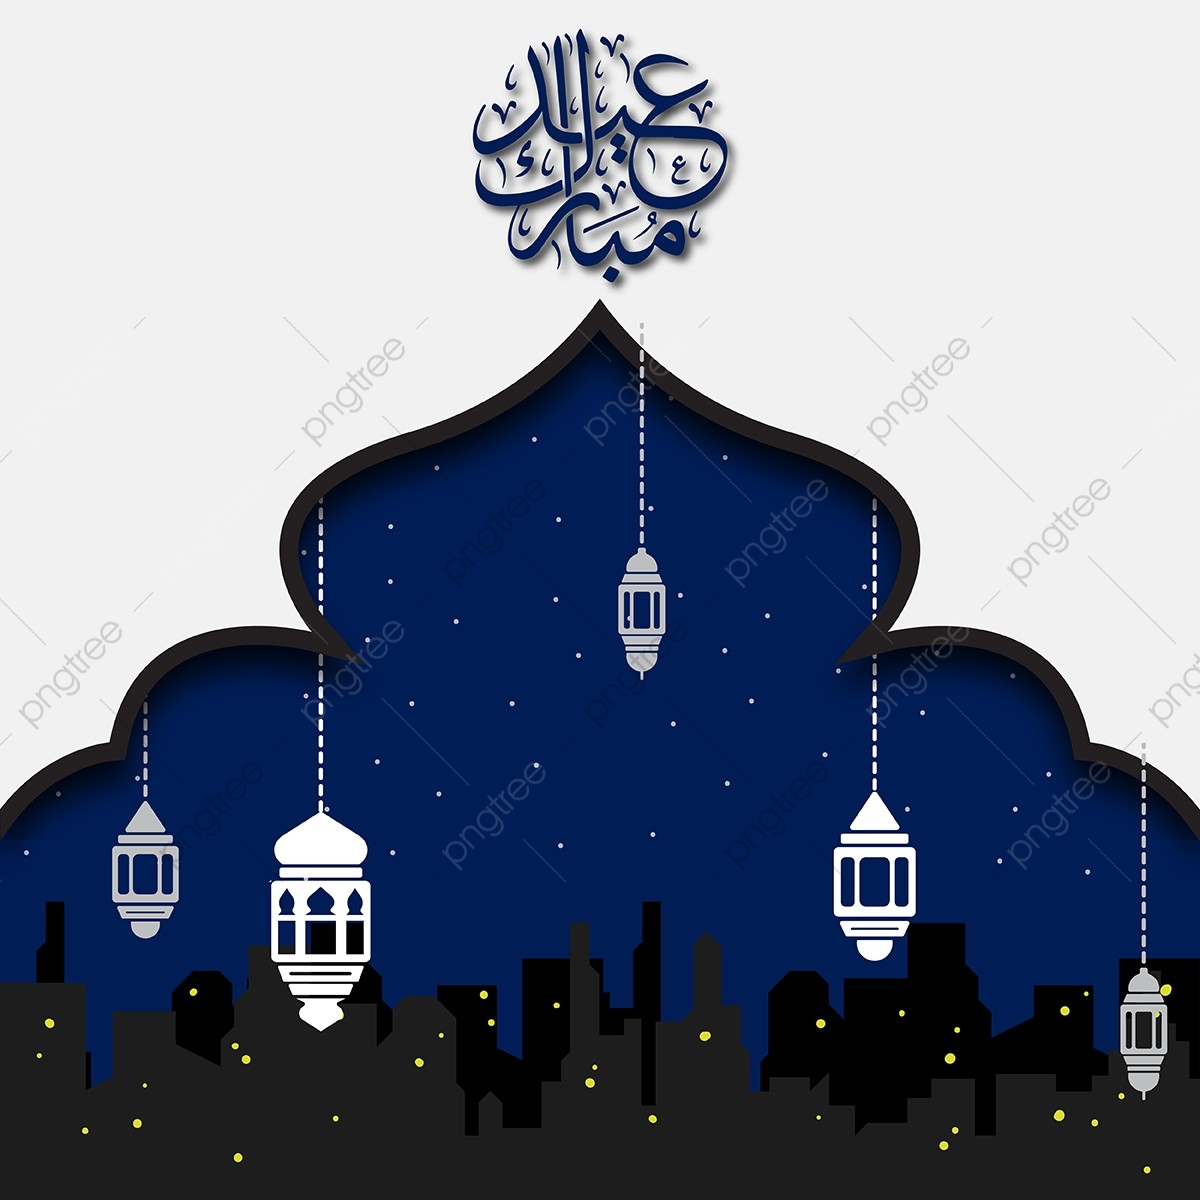 Eid Mubarak 2 Eid Mubarak Poster Eid Mubarak Poster Design Eid Mubarak Graphics Design Png And Vector With Transparent Background For Free Download